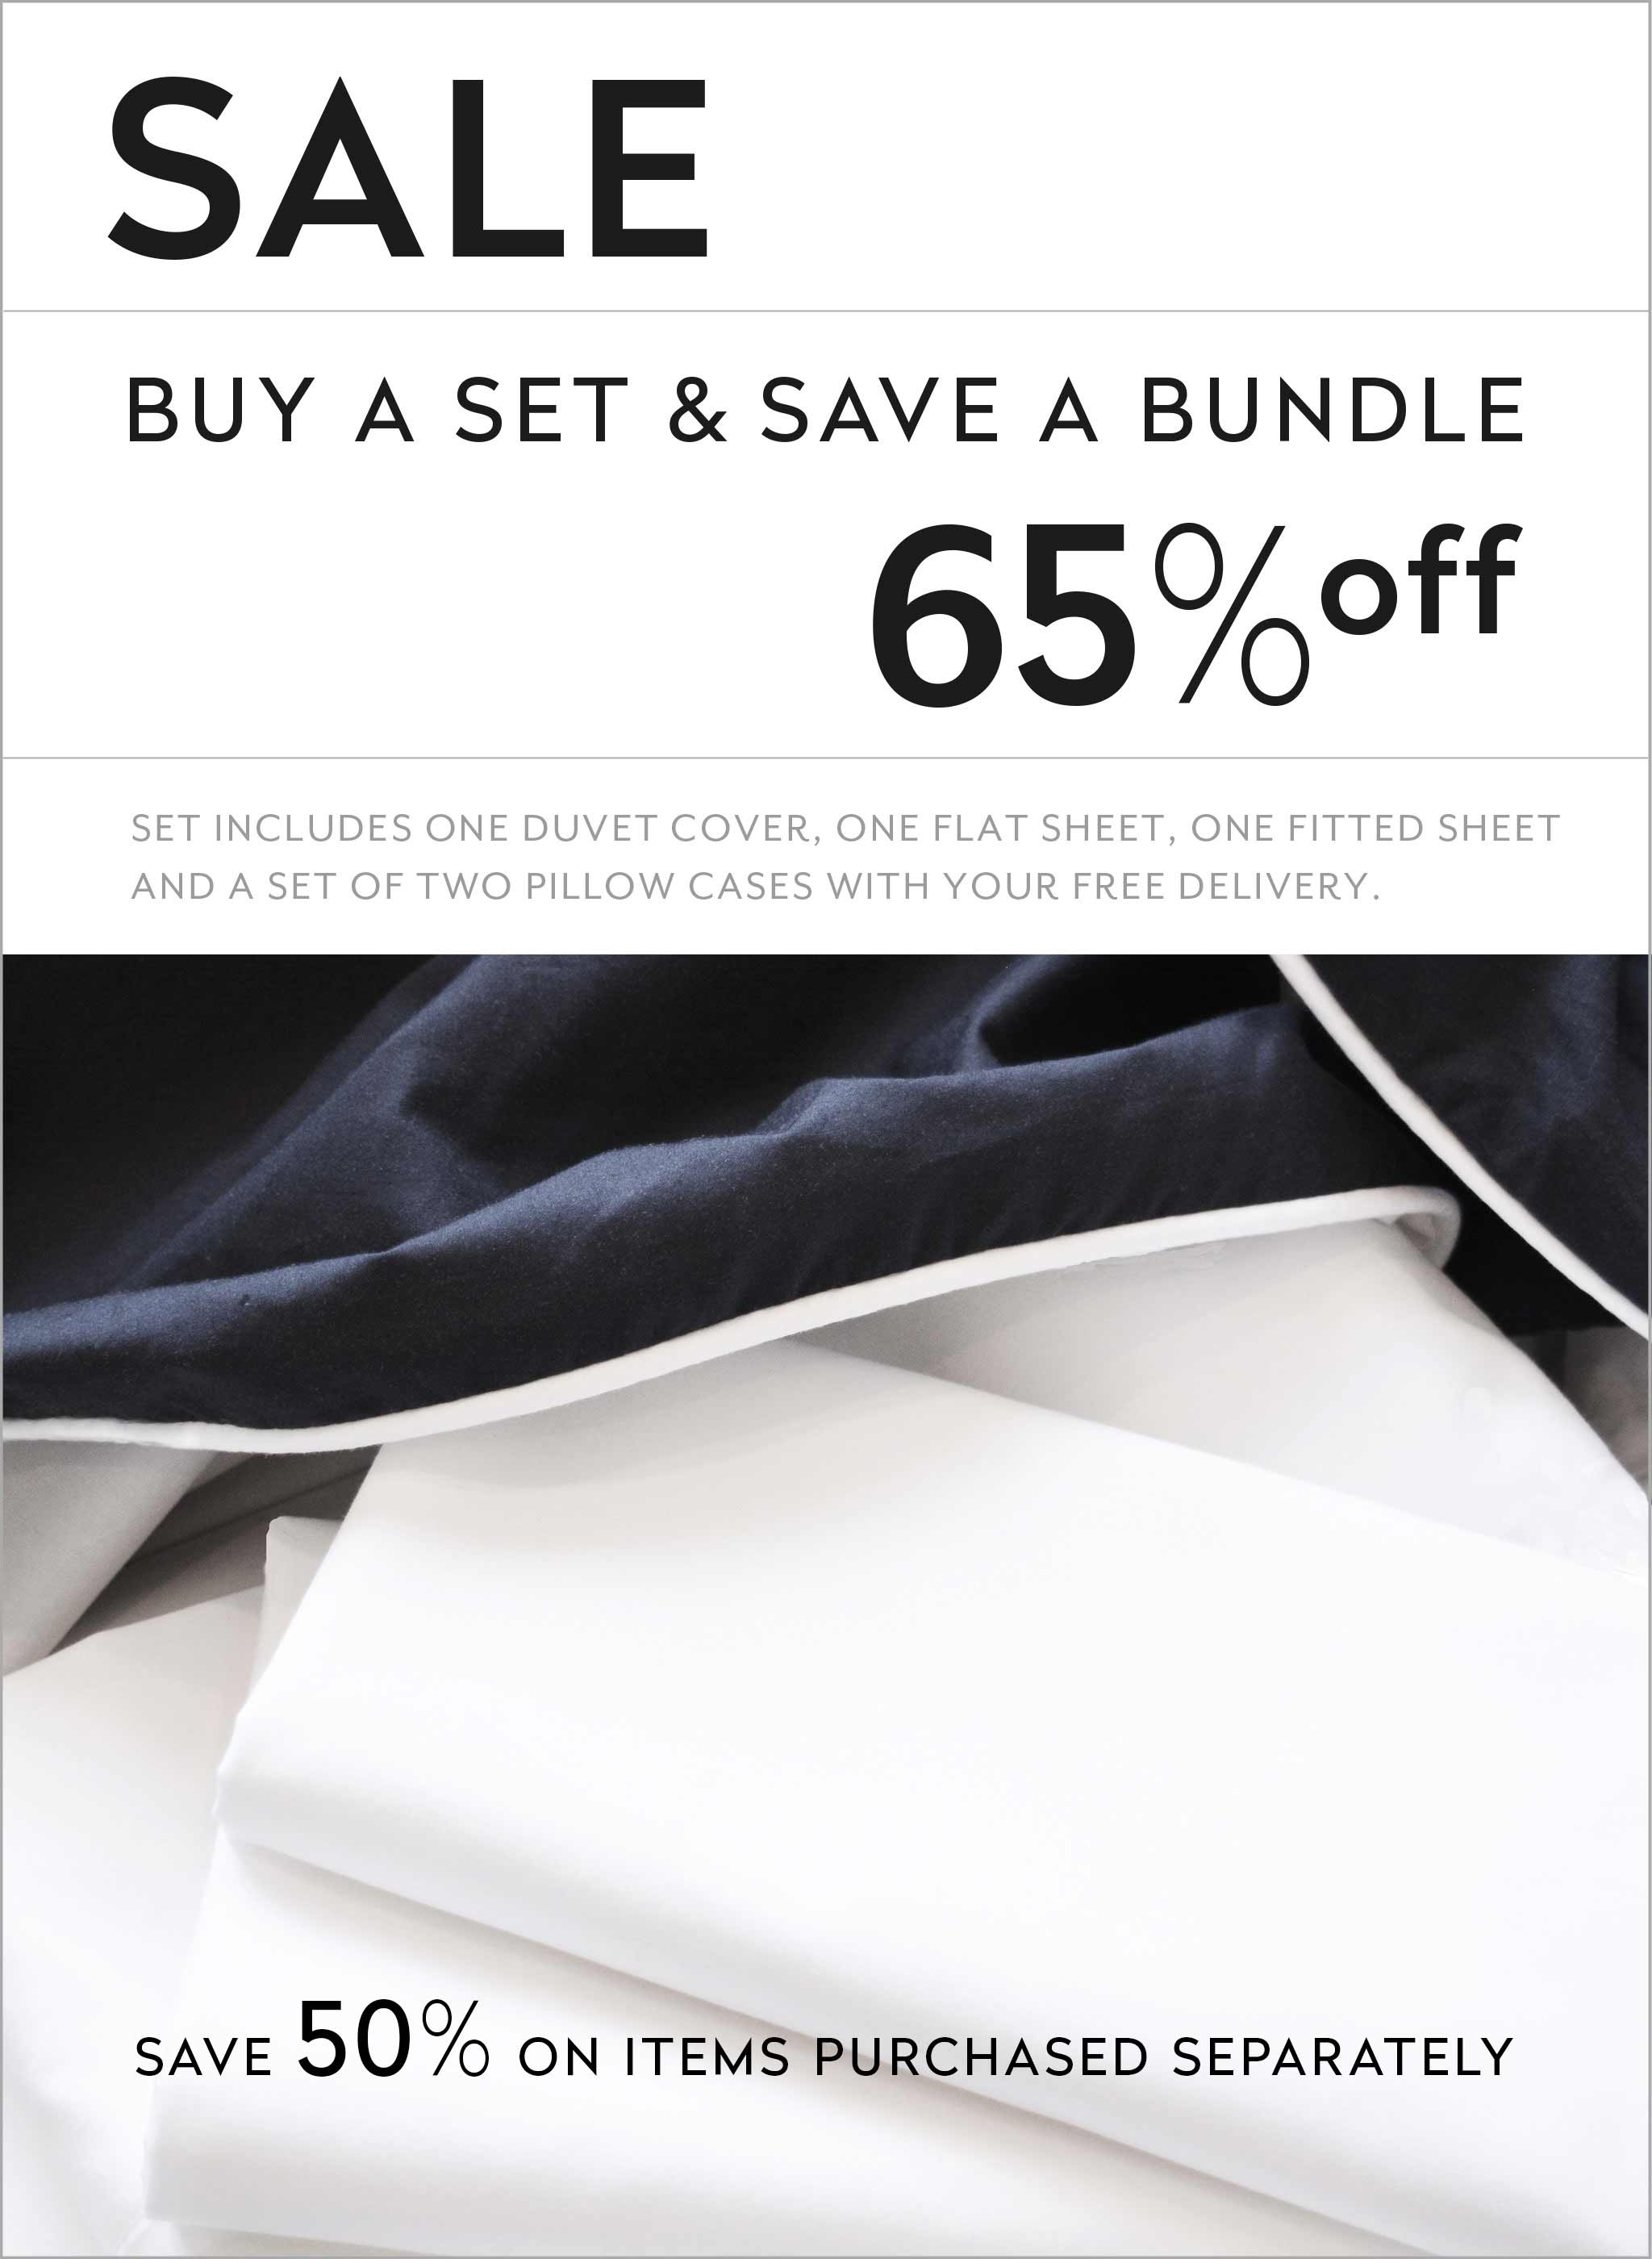 ZayZay luxury linen set SALE save 65 percent Penguin Love duvet cover sheets pillowcase